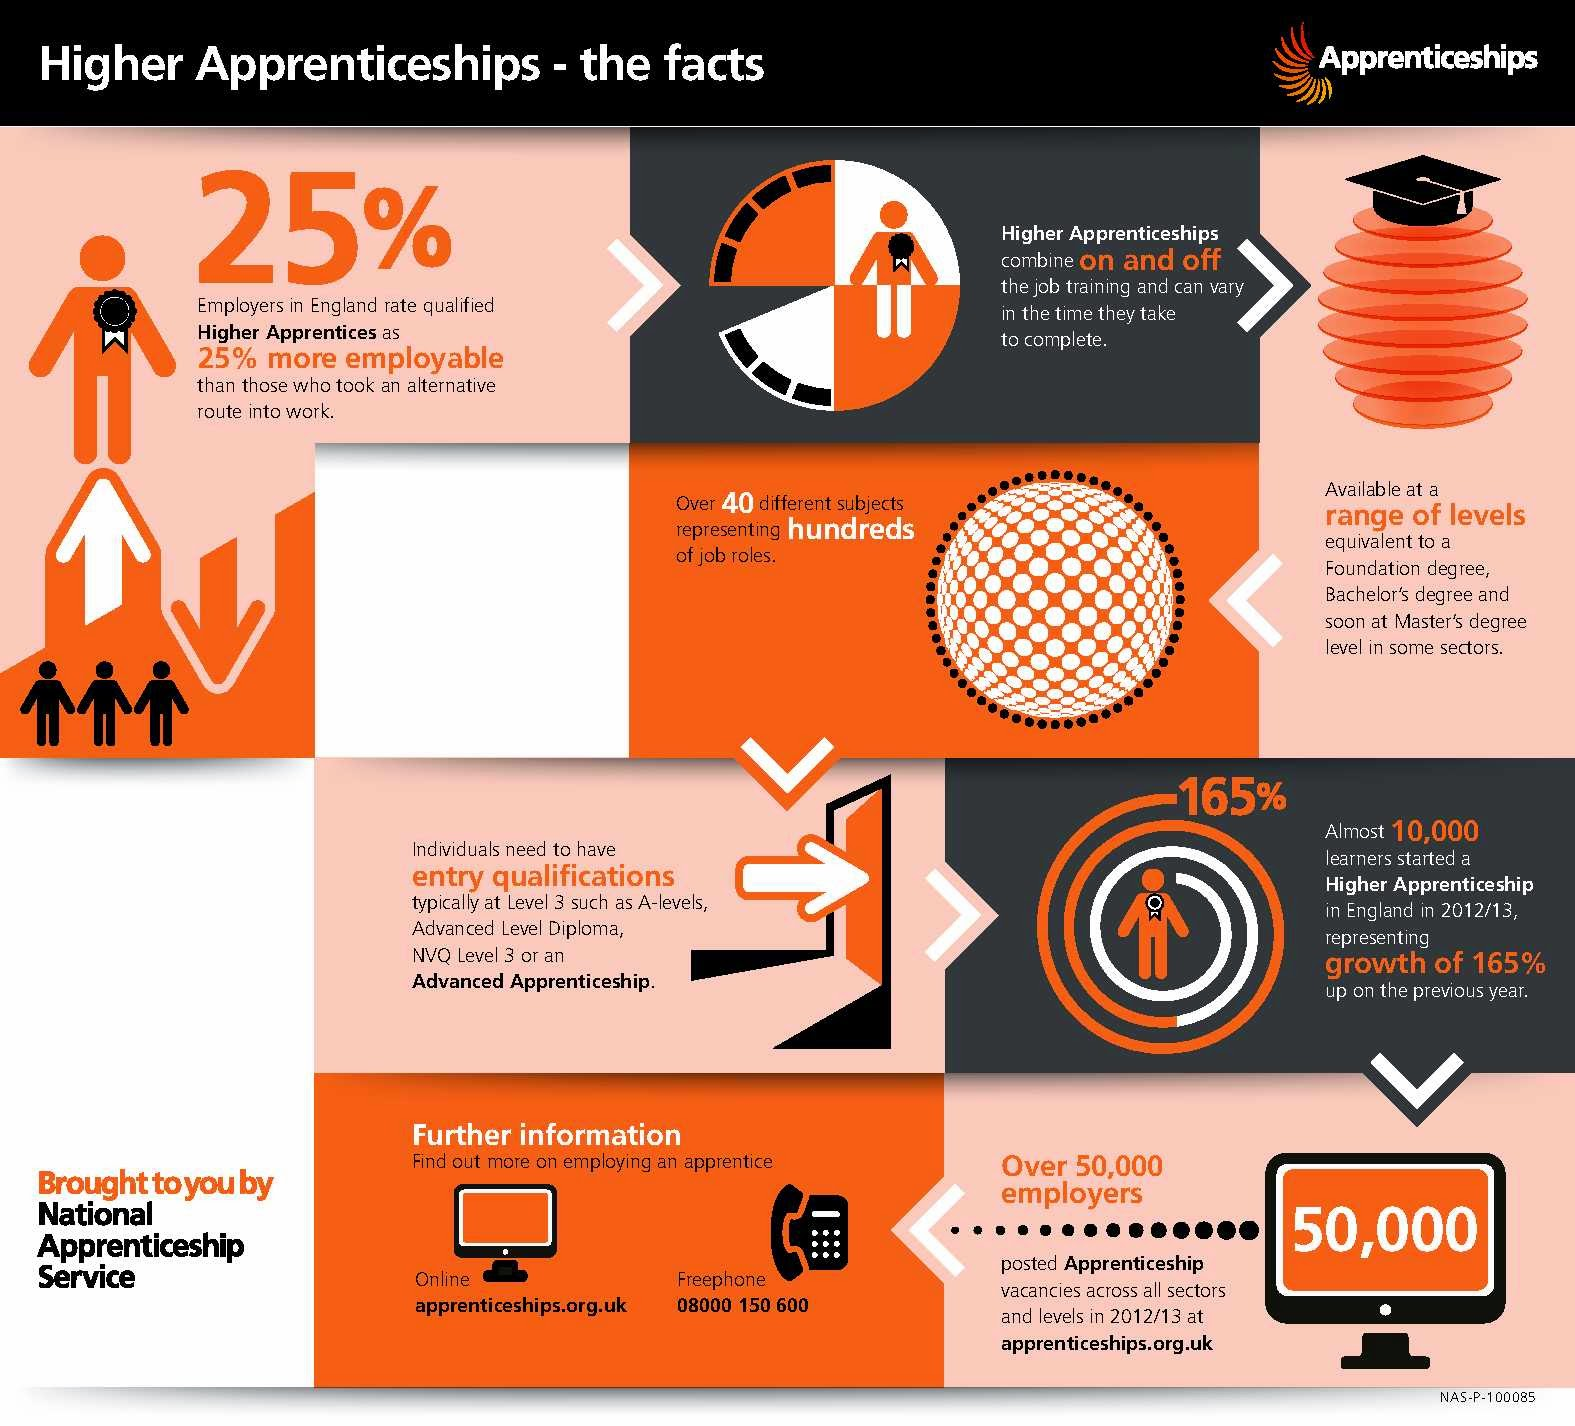 4 H On Twitter Check Out This Infographic On How To: Higher Apprenticeships